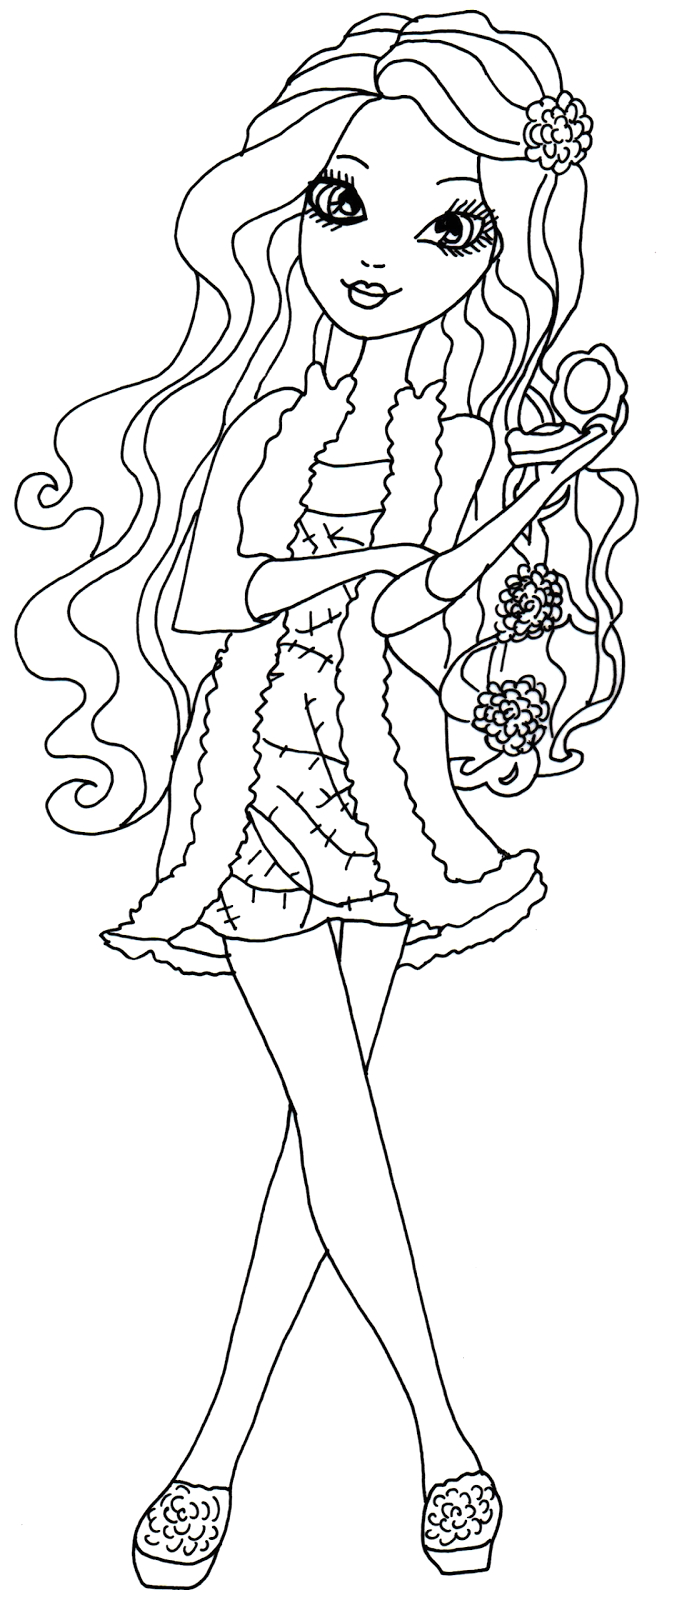 briar beauty ting fairest coloring